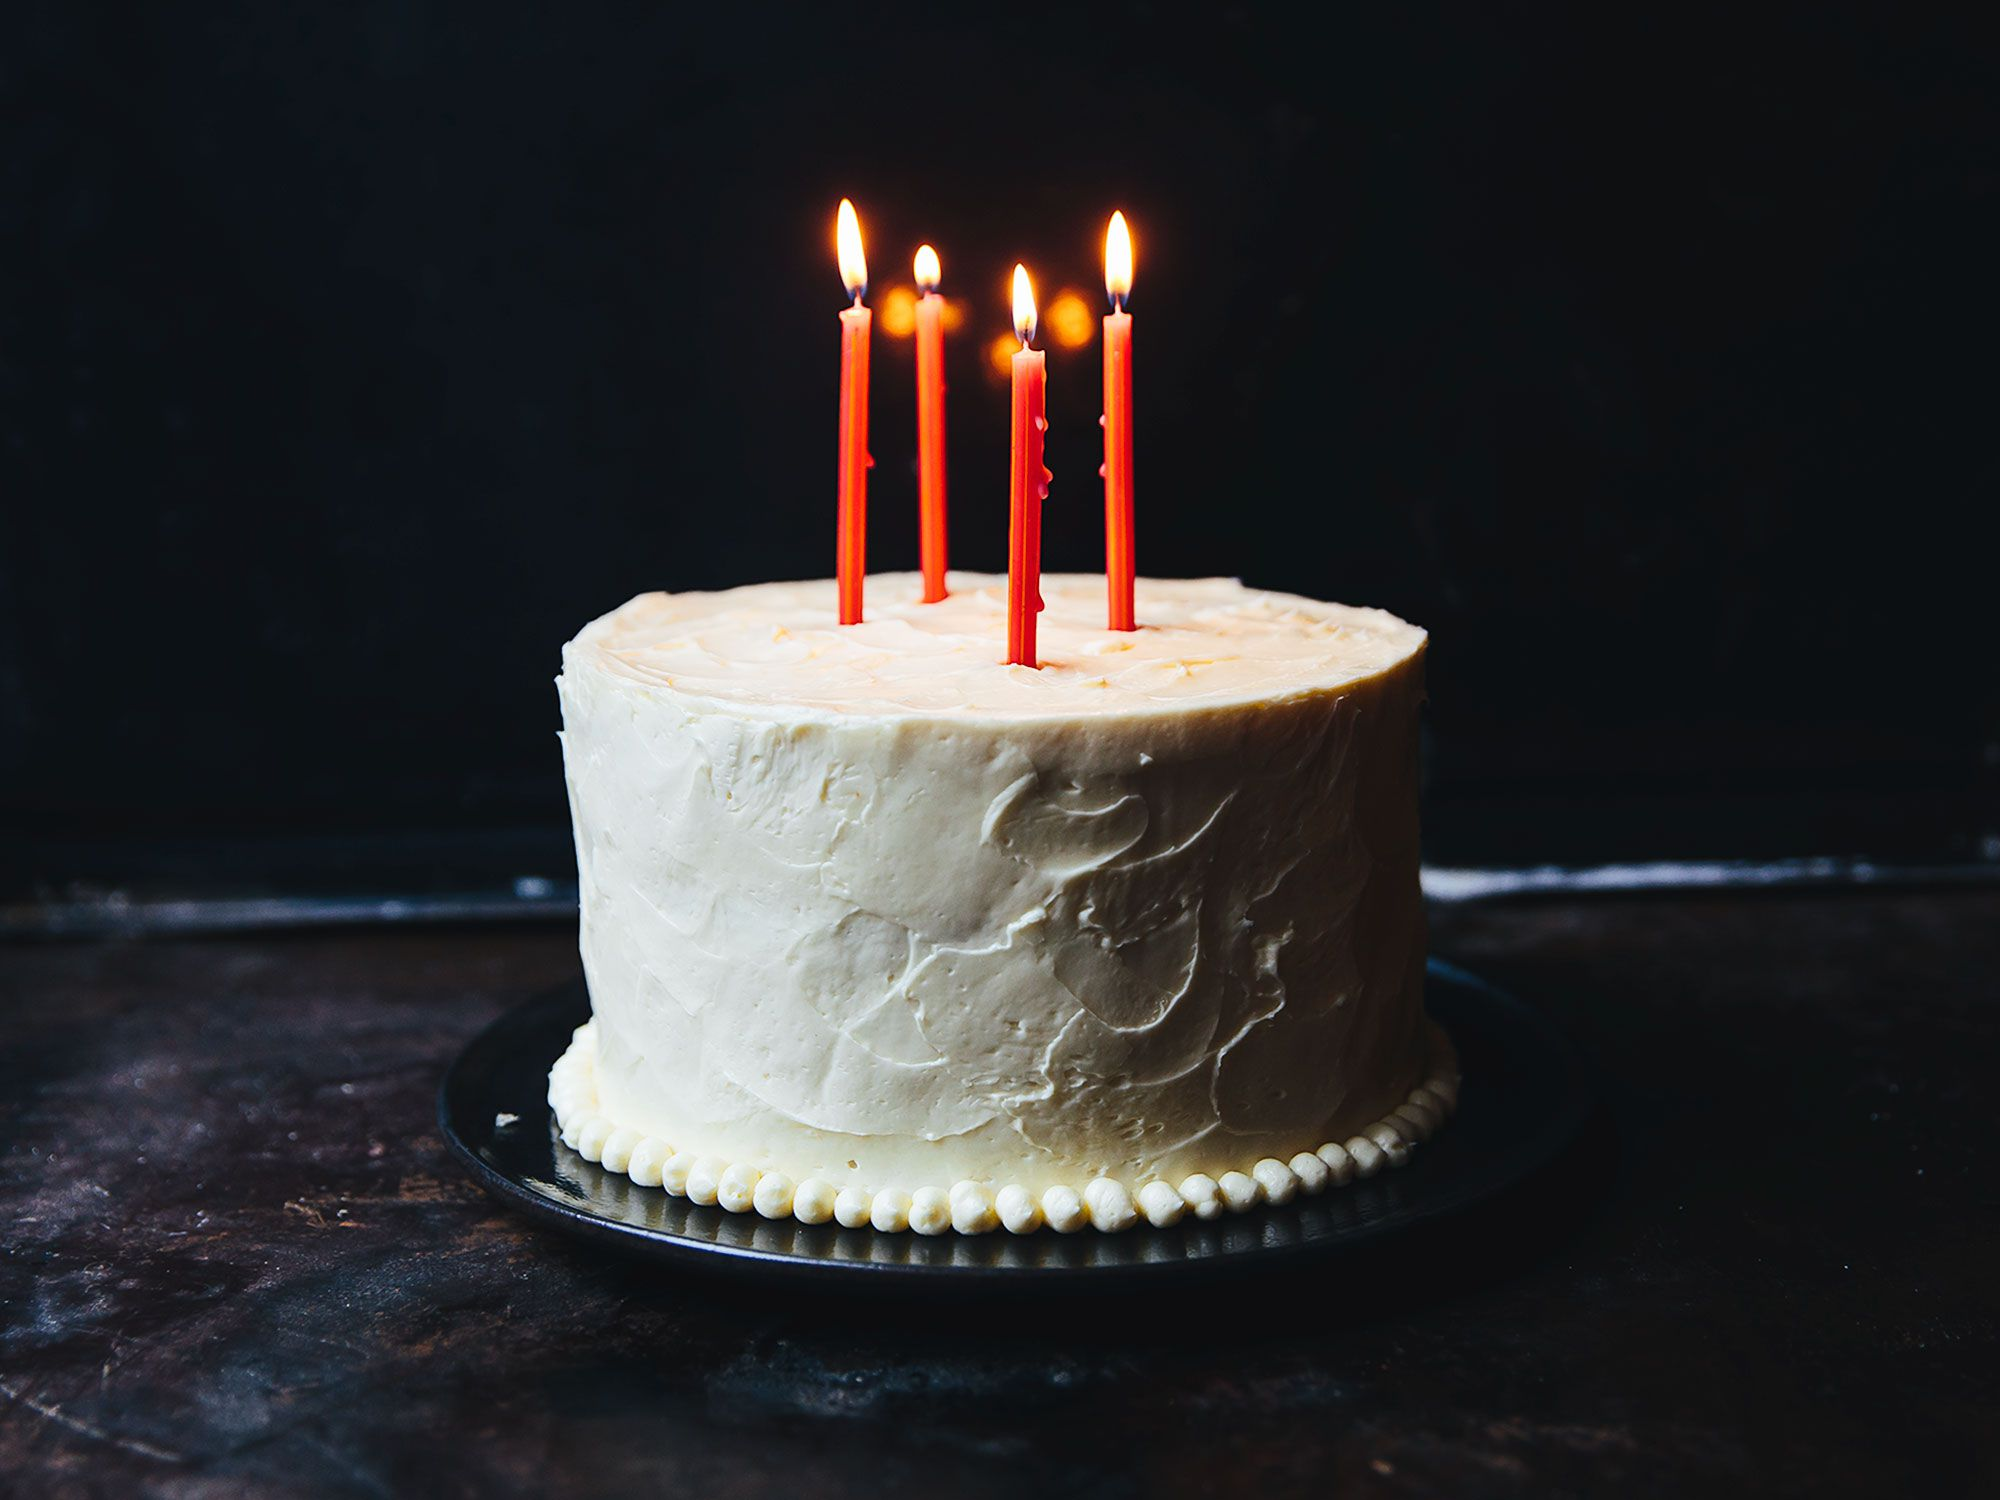 21 of Our Best Birthday Cake Recipes for Your Party | Saveur